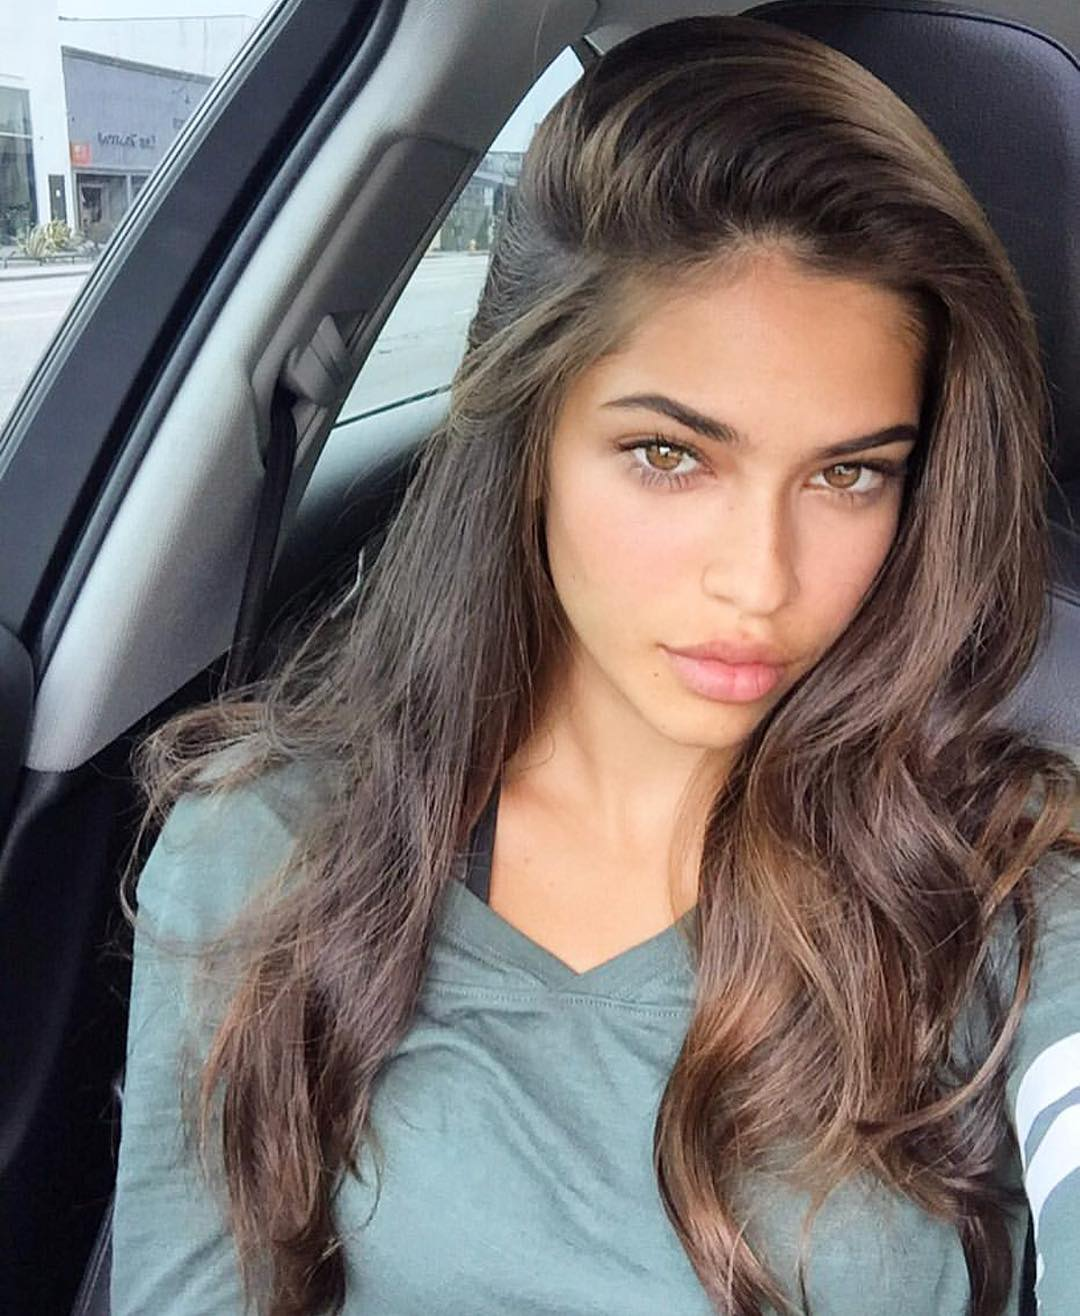 Model Juliana Herz